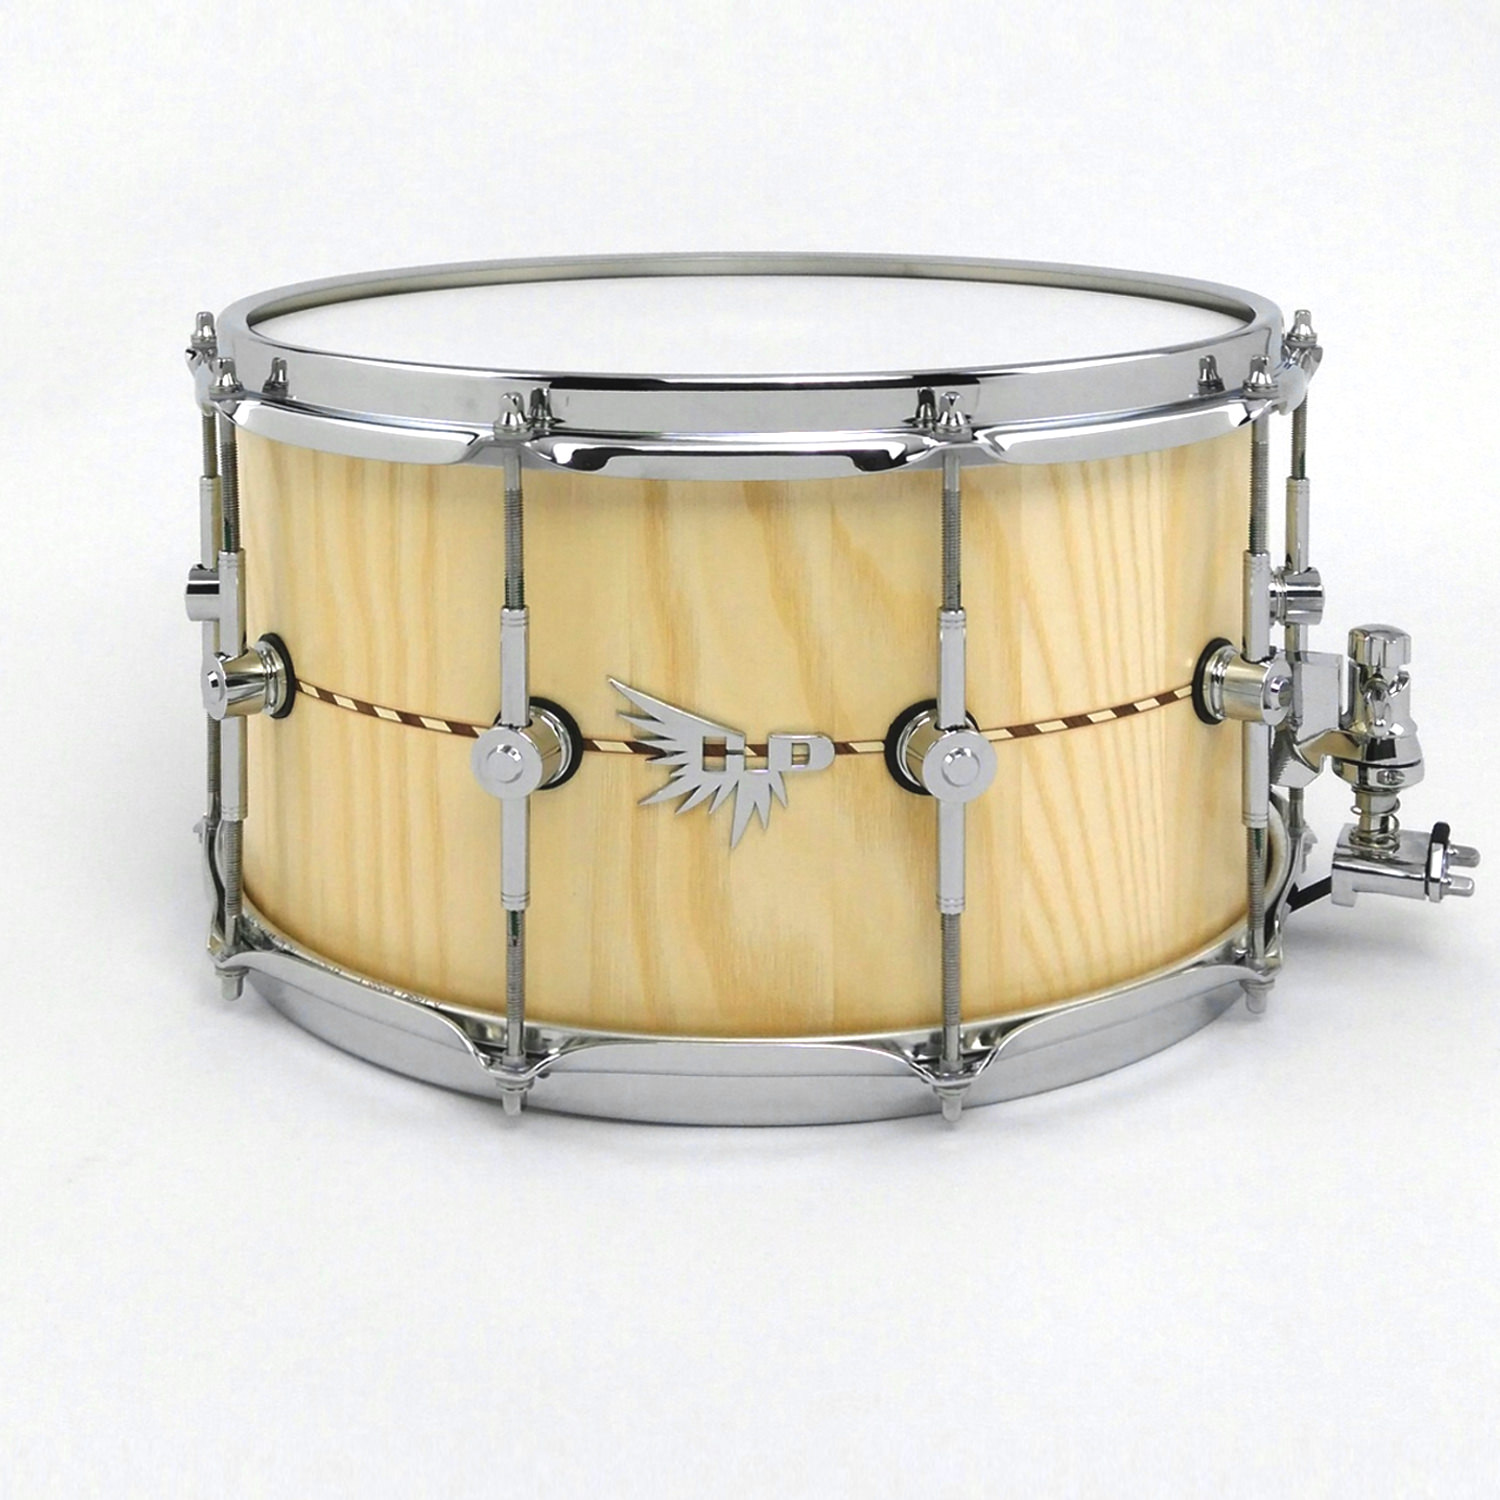 "Big 8"" Stave Snare Drum Ash Wood Hendrix Drums"